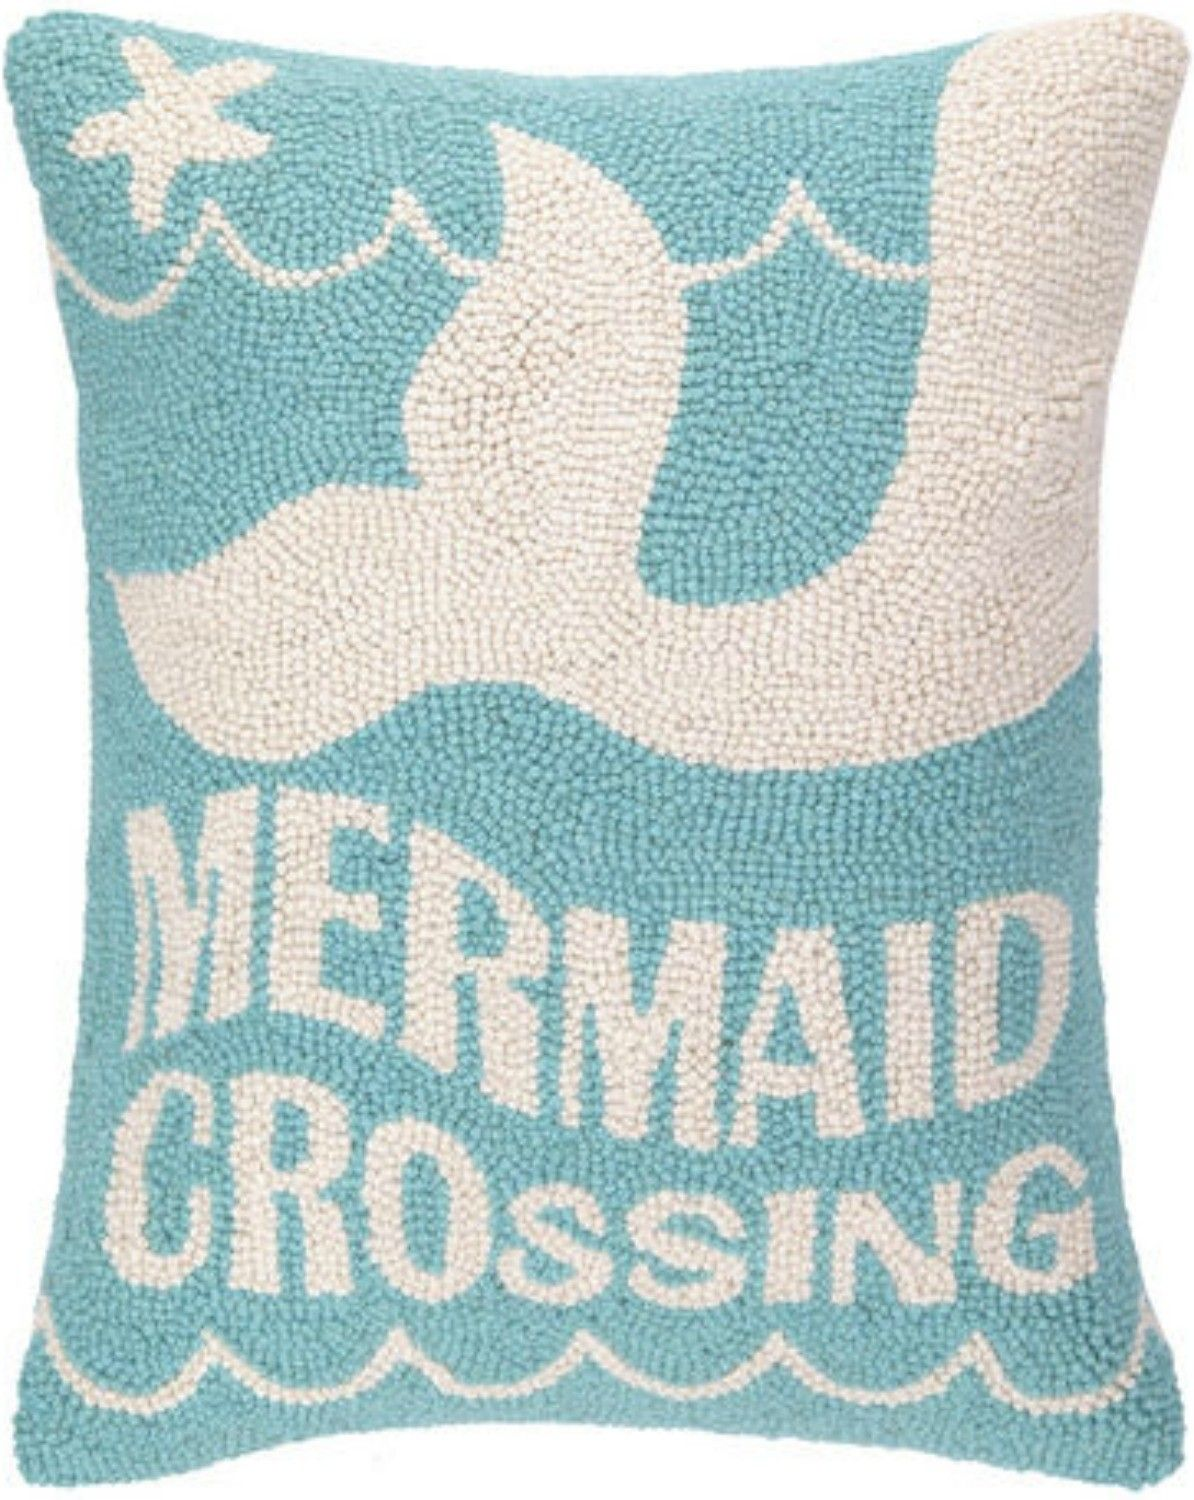 cf c beach cor decor f coastal nautical pillows decorative d home pillow